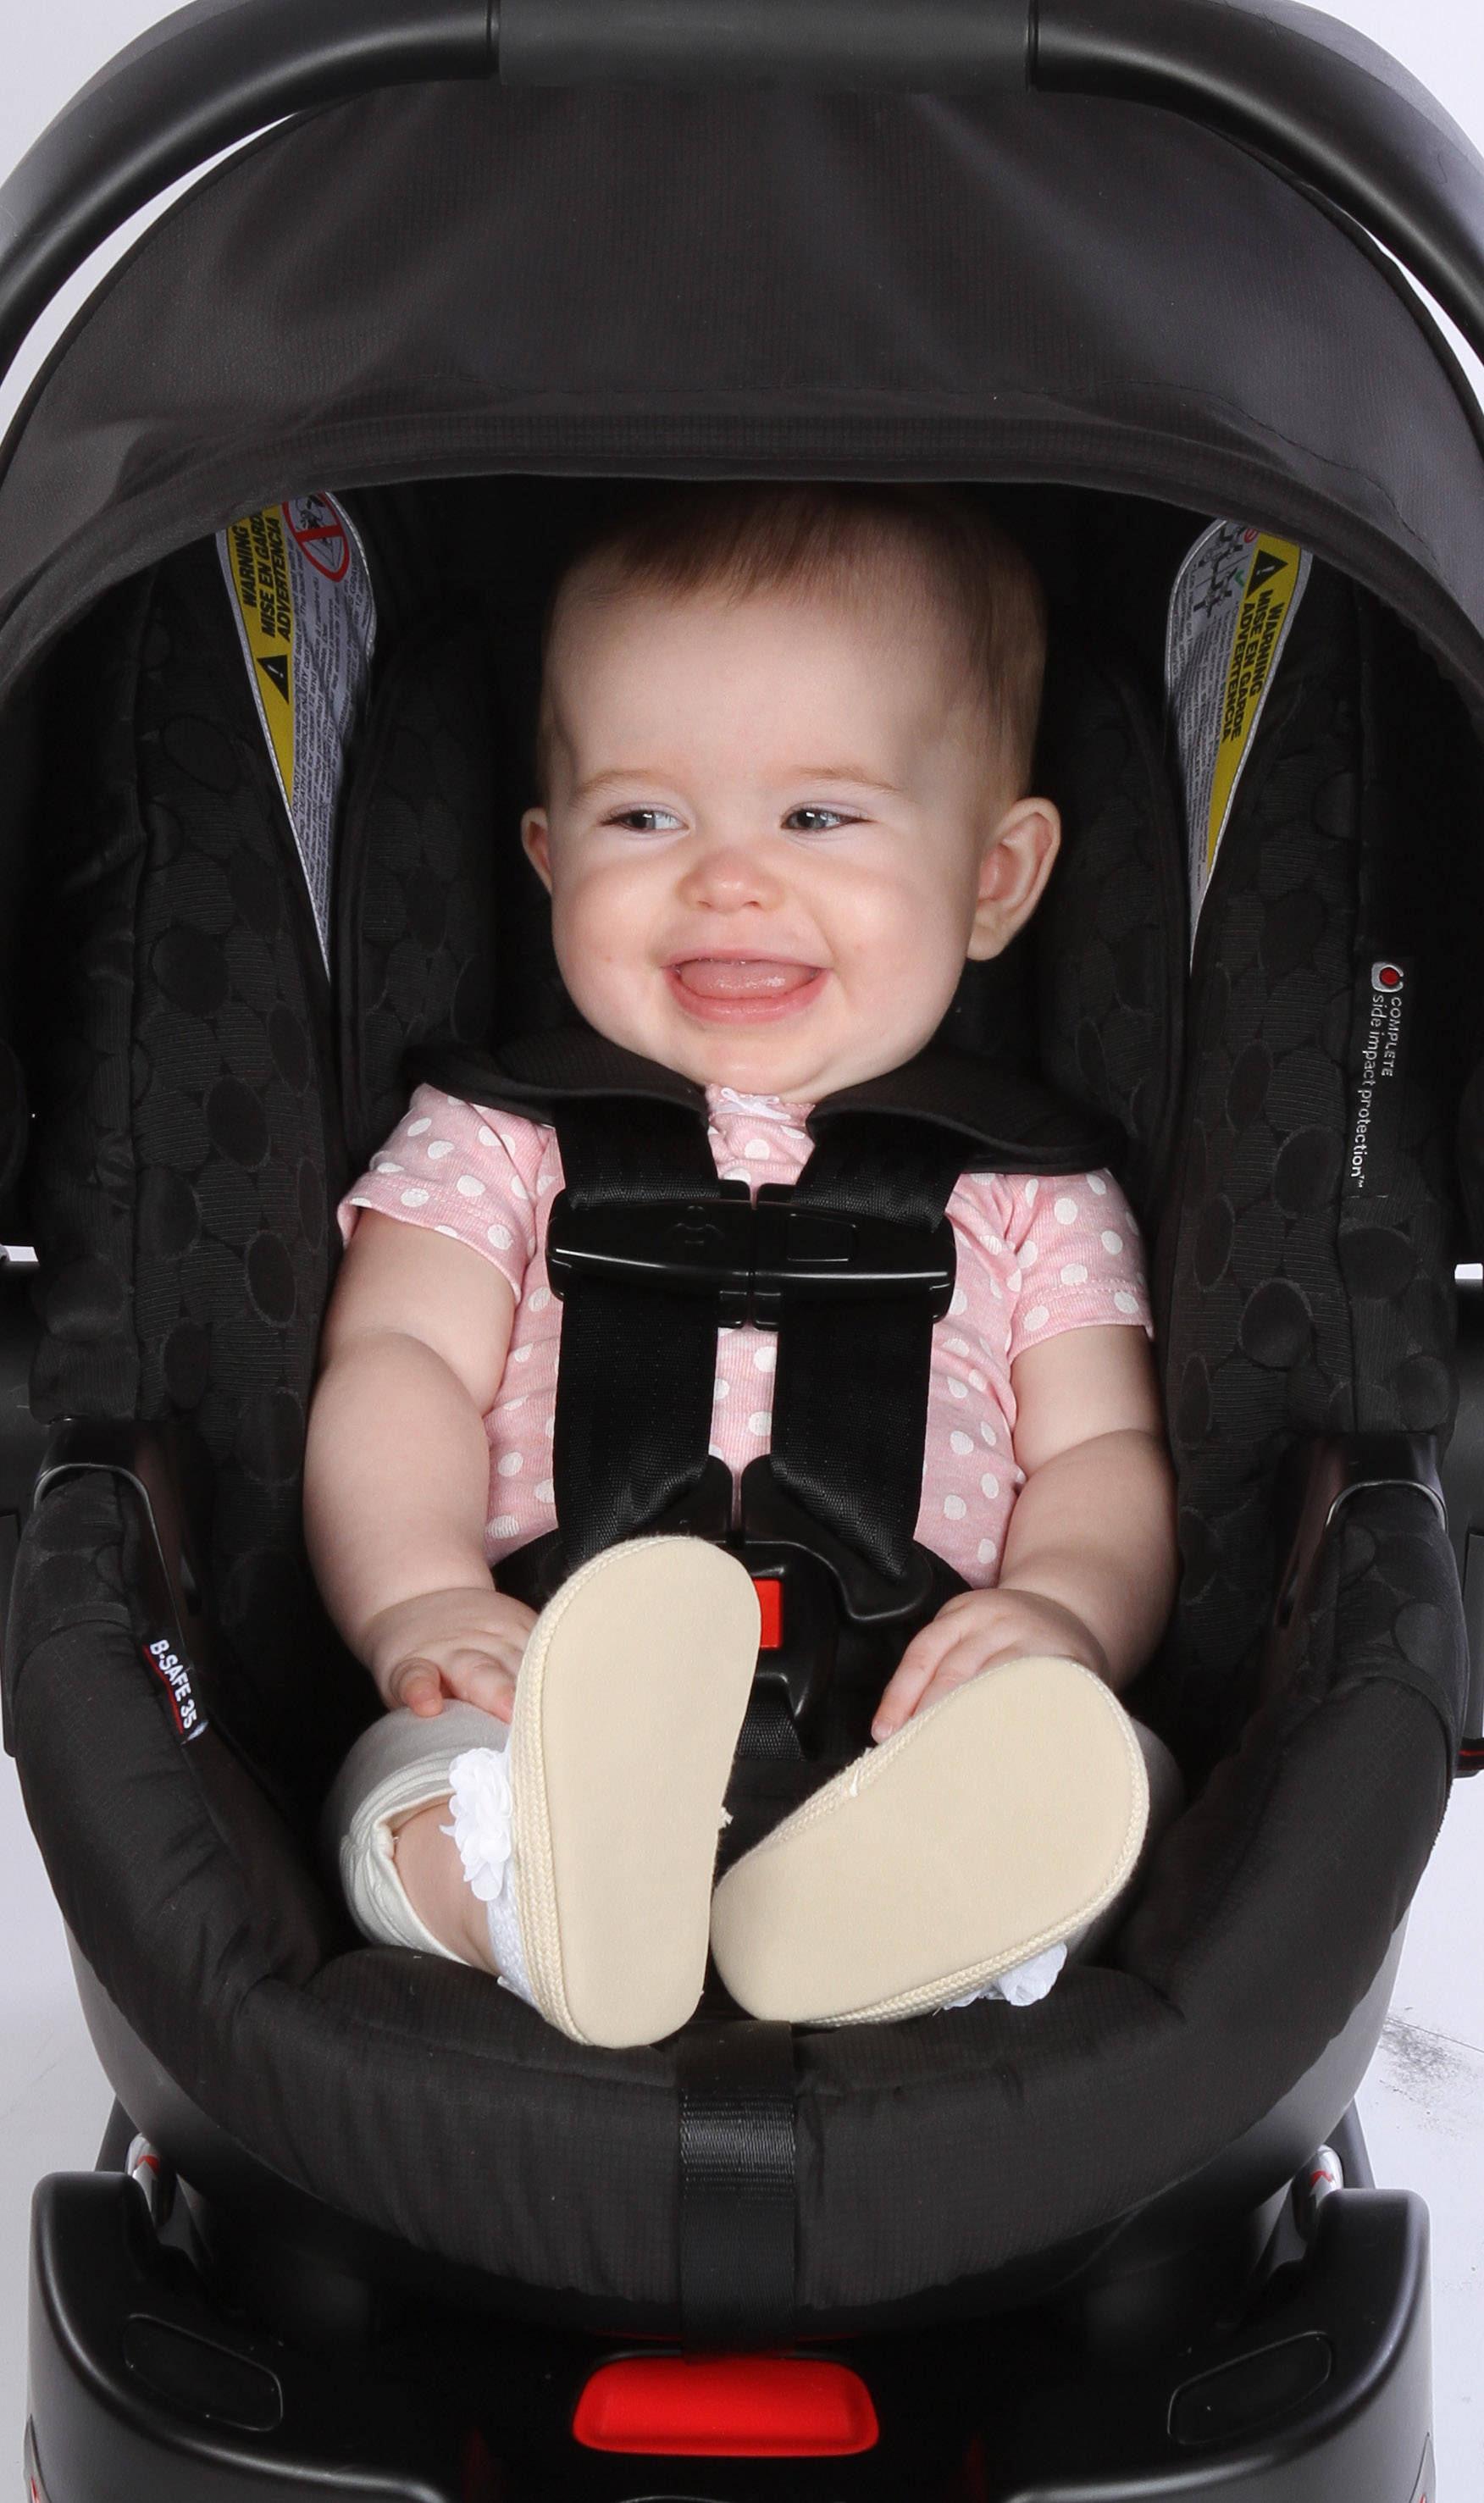 What To Think About For Baby S First Ride Home Wellbeing By Well Ca